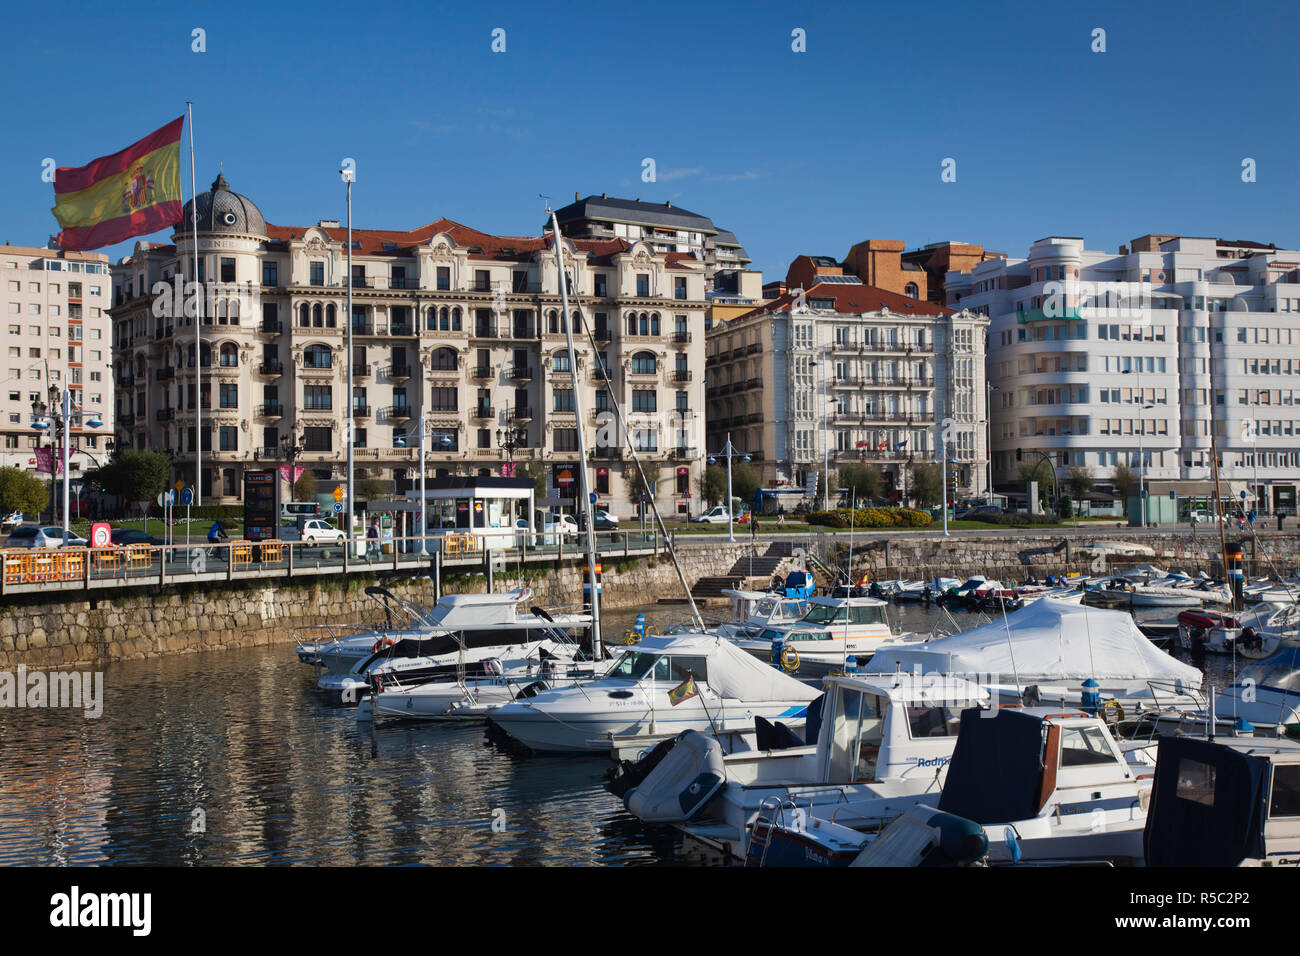 Spain, Cantabria Region, Cantabria Province, Santander, waterfront buildings Stock Photo